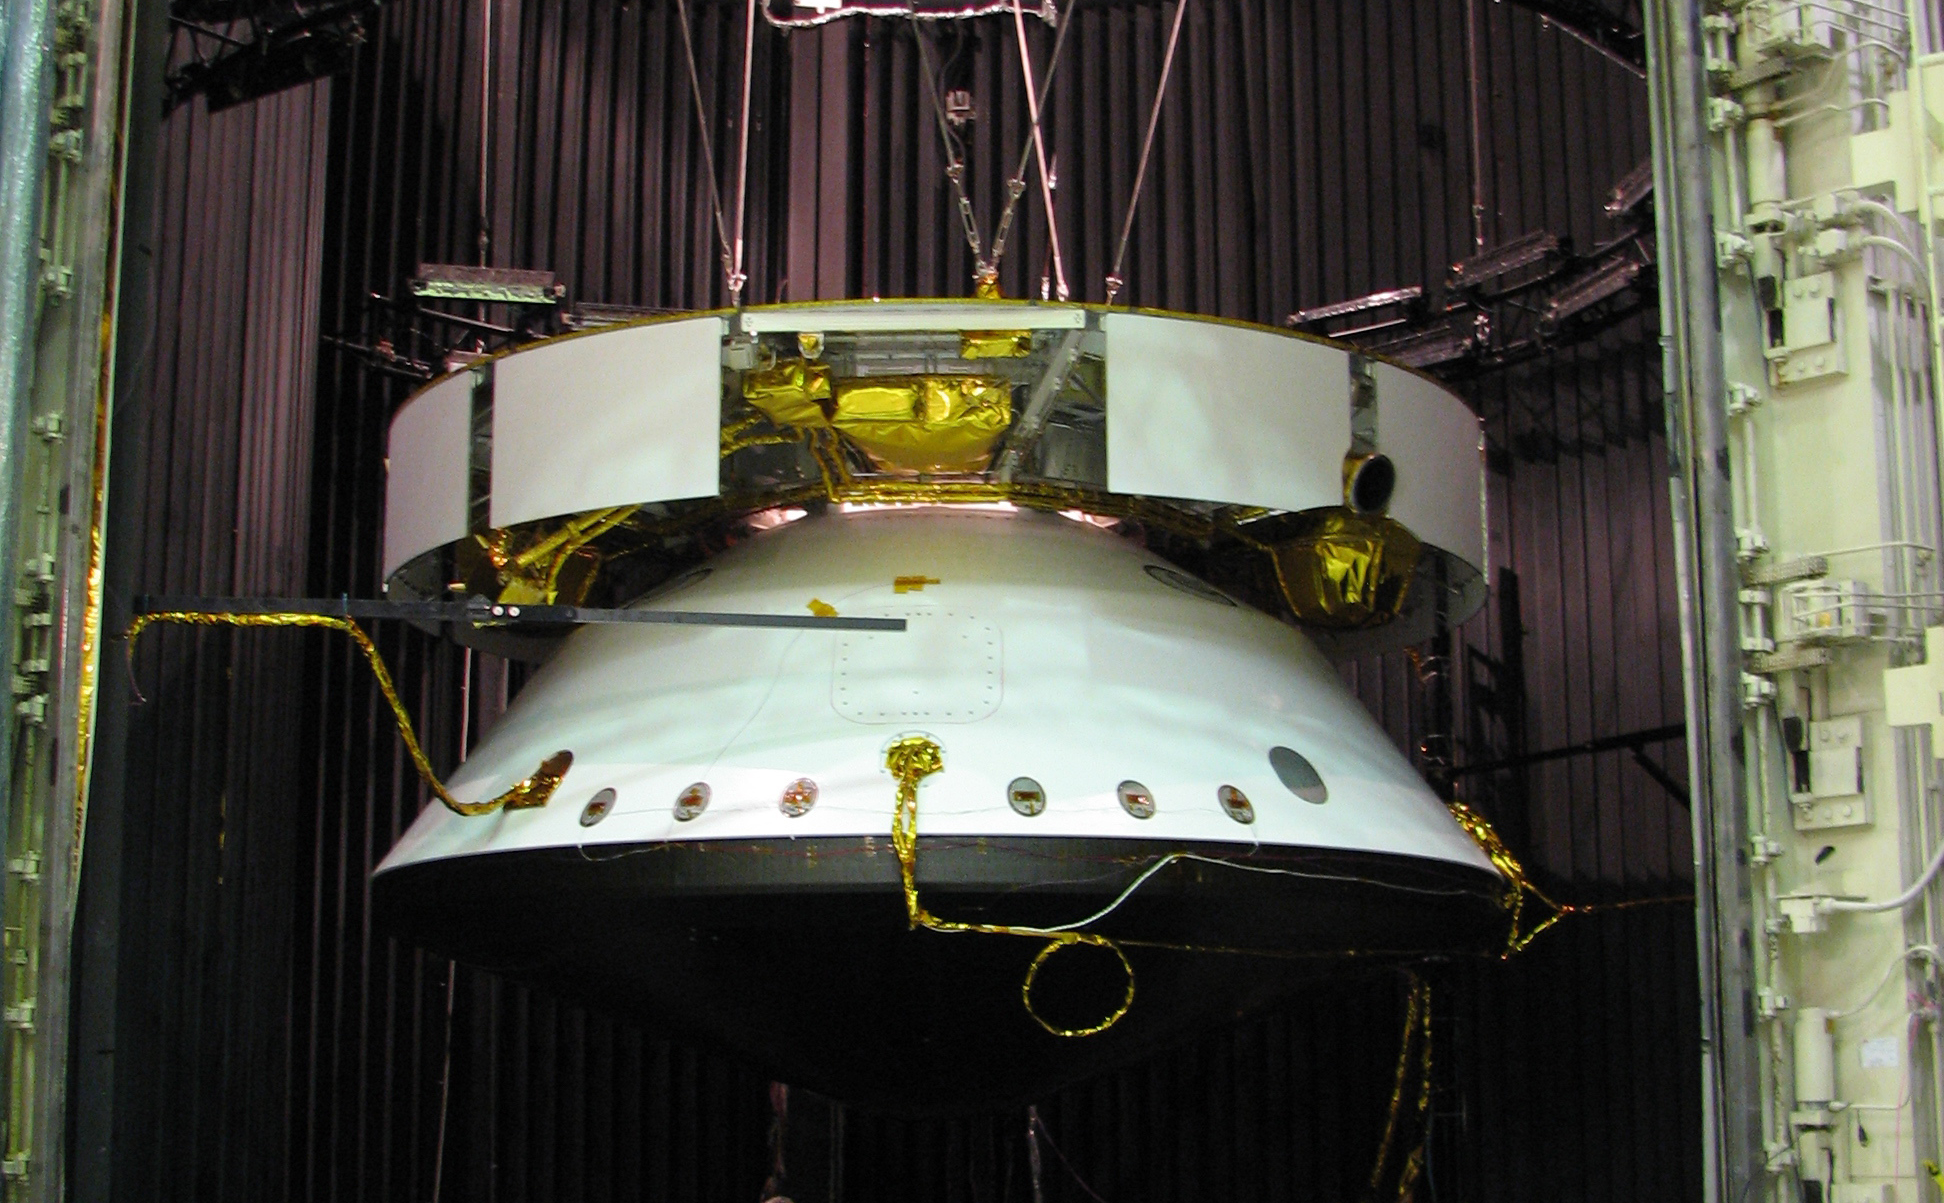 This image shows the Mars Science Laboratory spacecraft is suspended in a dark chamber, awaiting an environmental test.